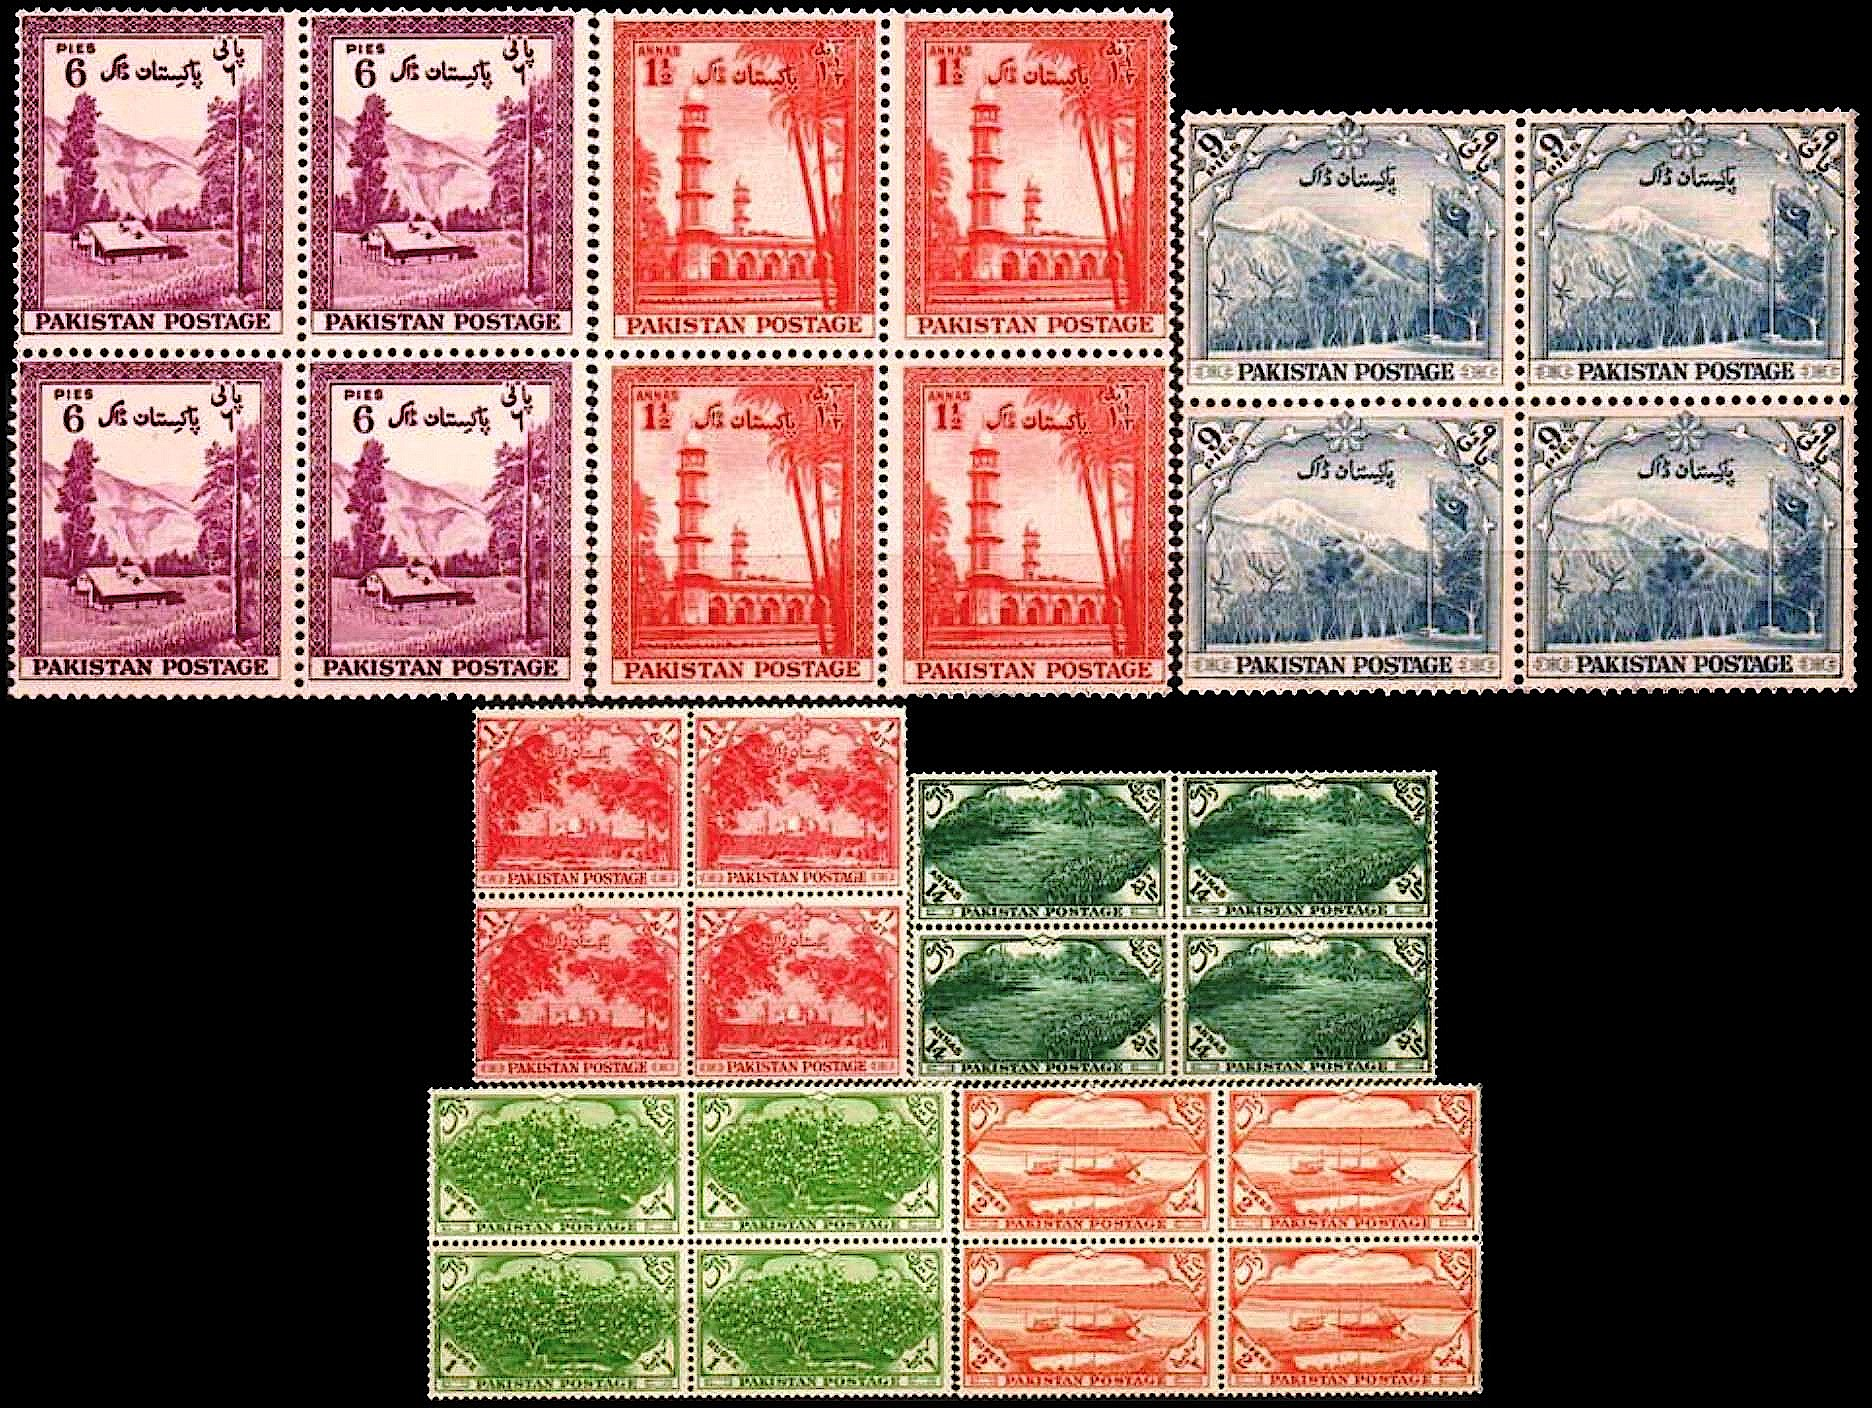 Pakistan Stamps 1954 7th Anniversary of Independence MNH